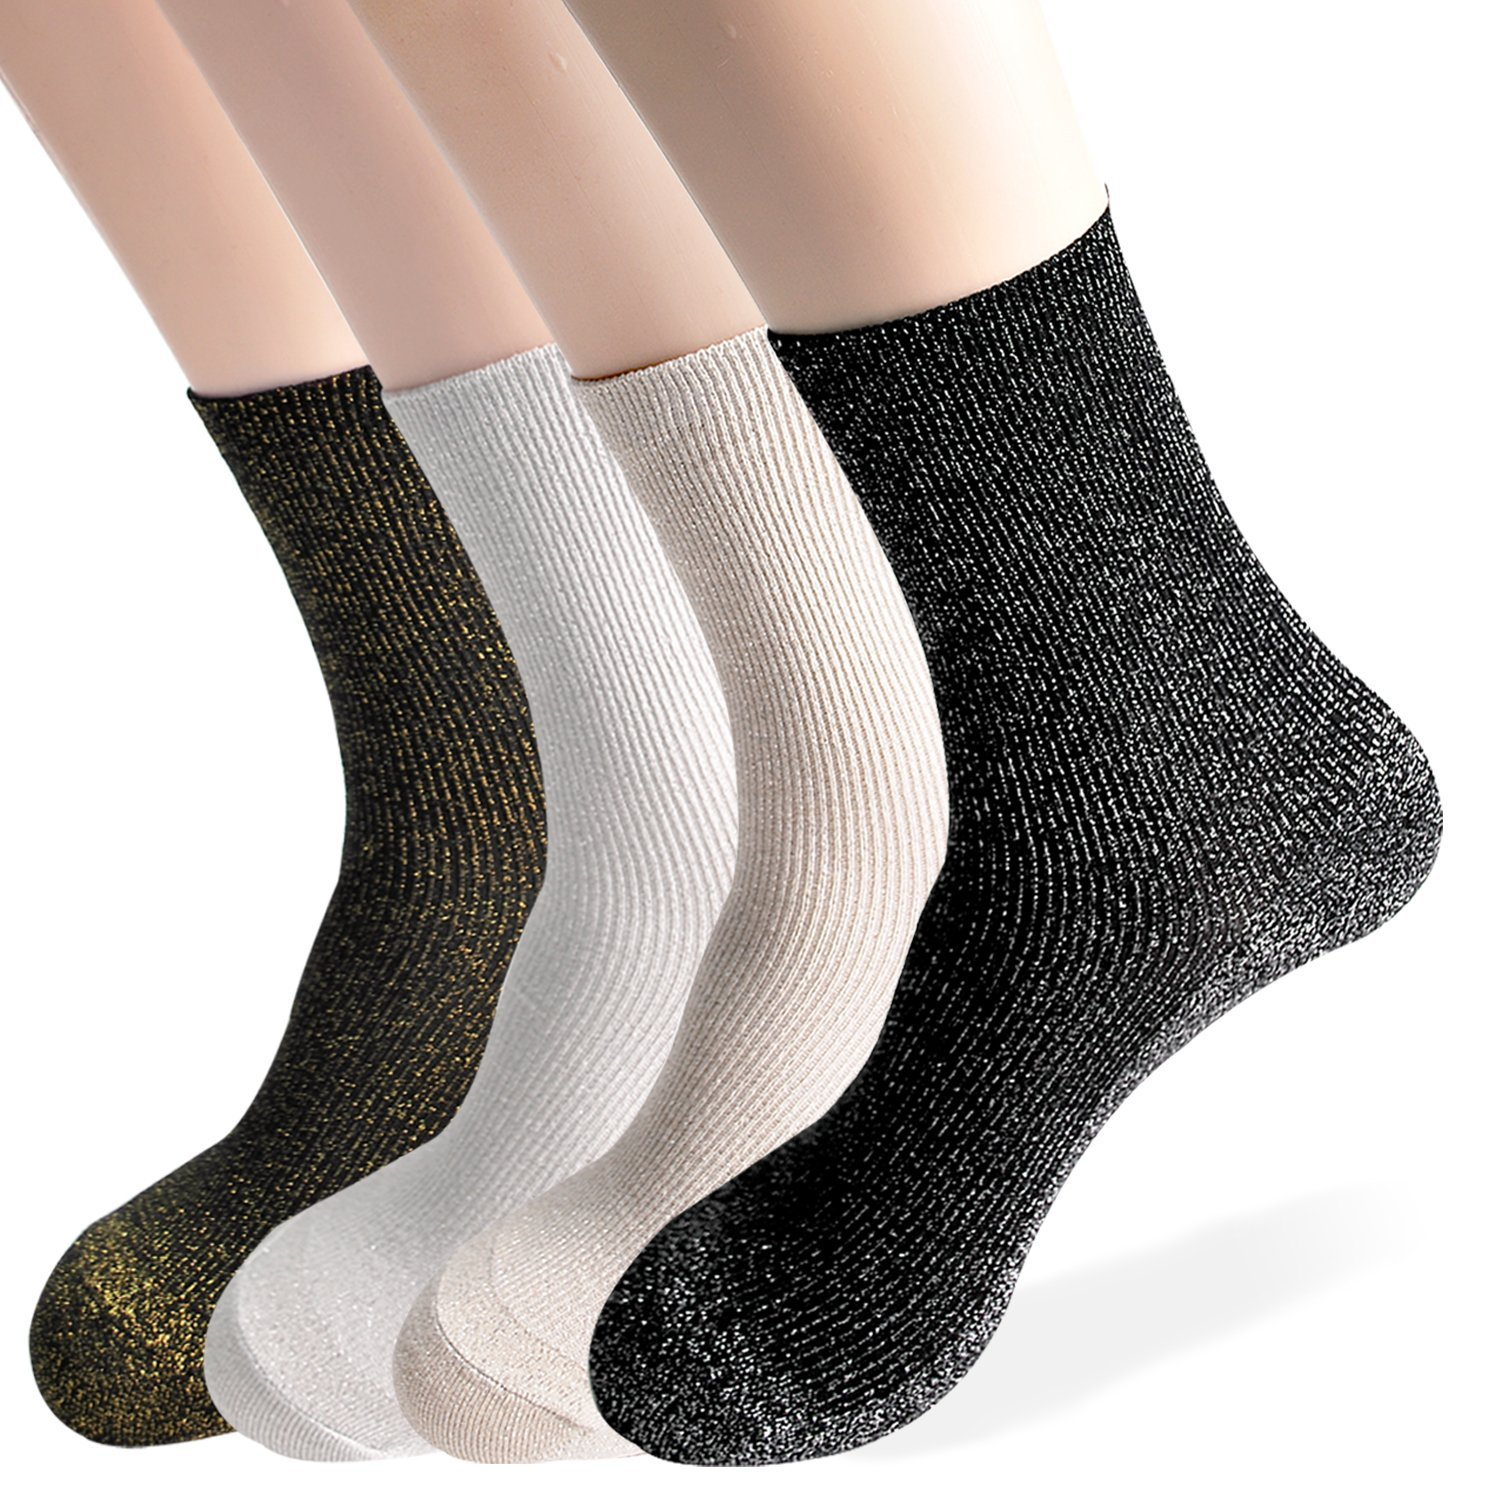 Womens Socks Collection|Metallic Socks|Glitter Socks|Lurex Socks|Sparkle Socks|Retro Socks|Fashion Socks|Socks Gift|Gift Idea